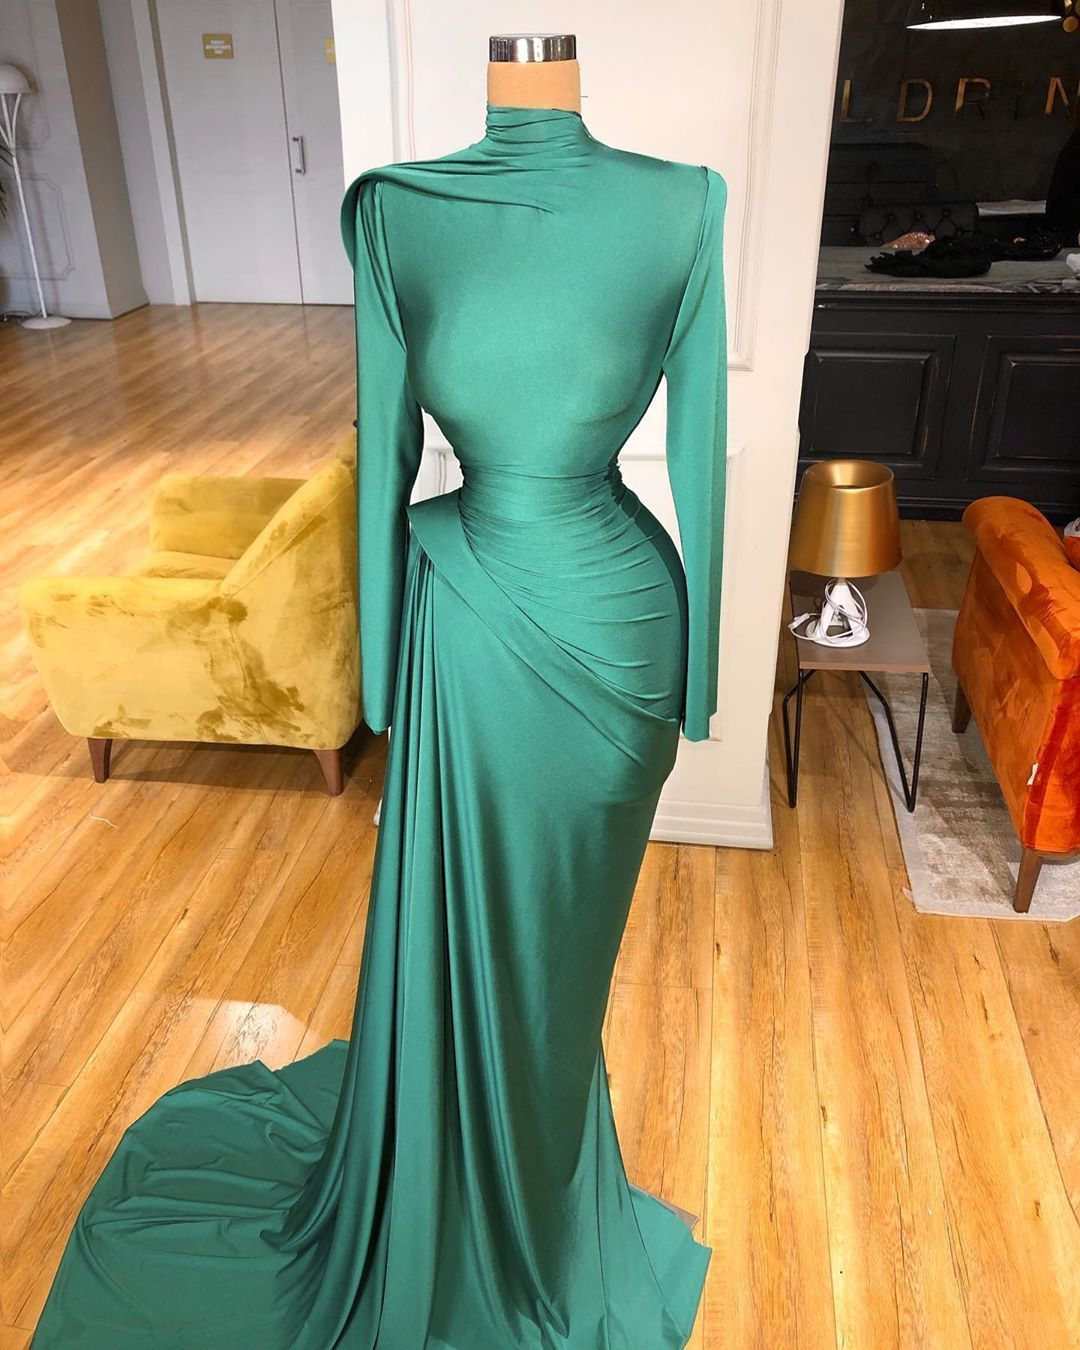 Stunning Valdrin Sahiti Custom Couture Gown Find The Perfect Gown With Pageant Planet Browse All Prom Dresses With Sleeves Soiree Dress Pageant Evening Gowns [ 1350 x 1080 Pixel ]